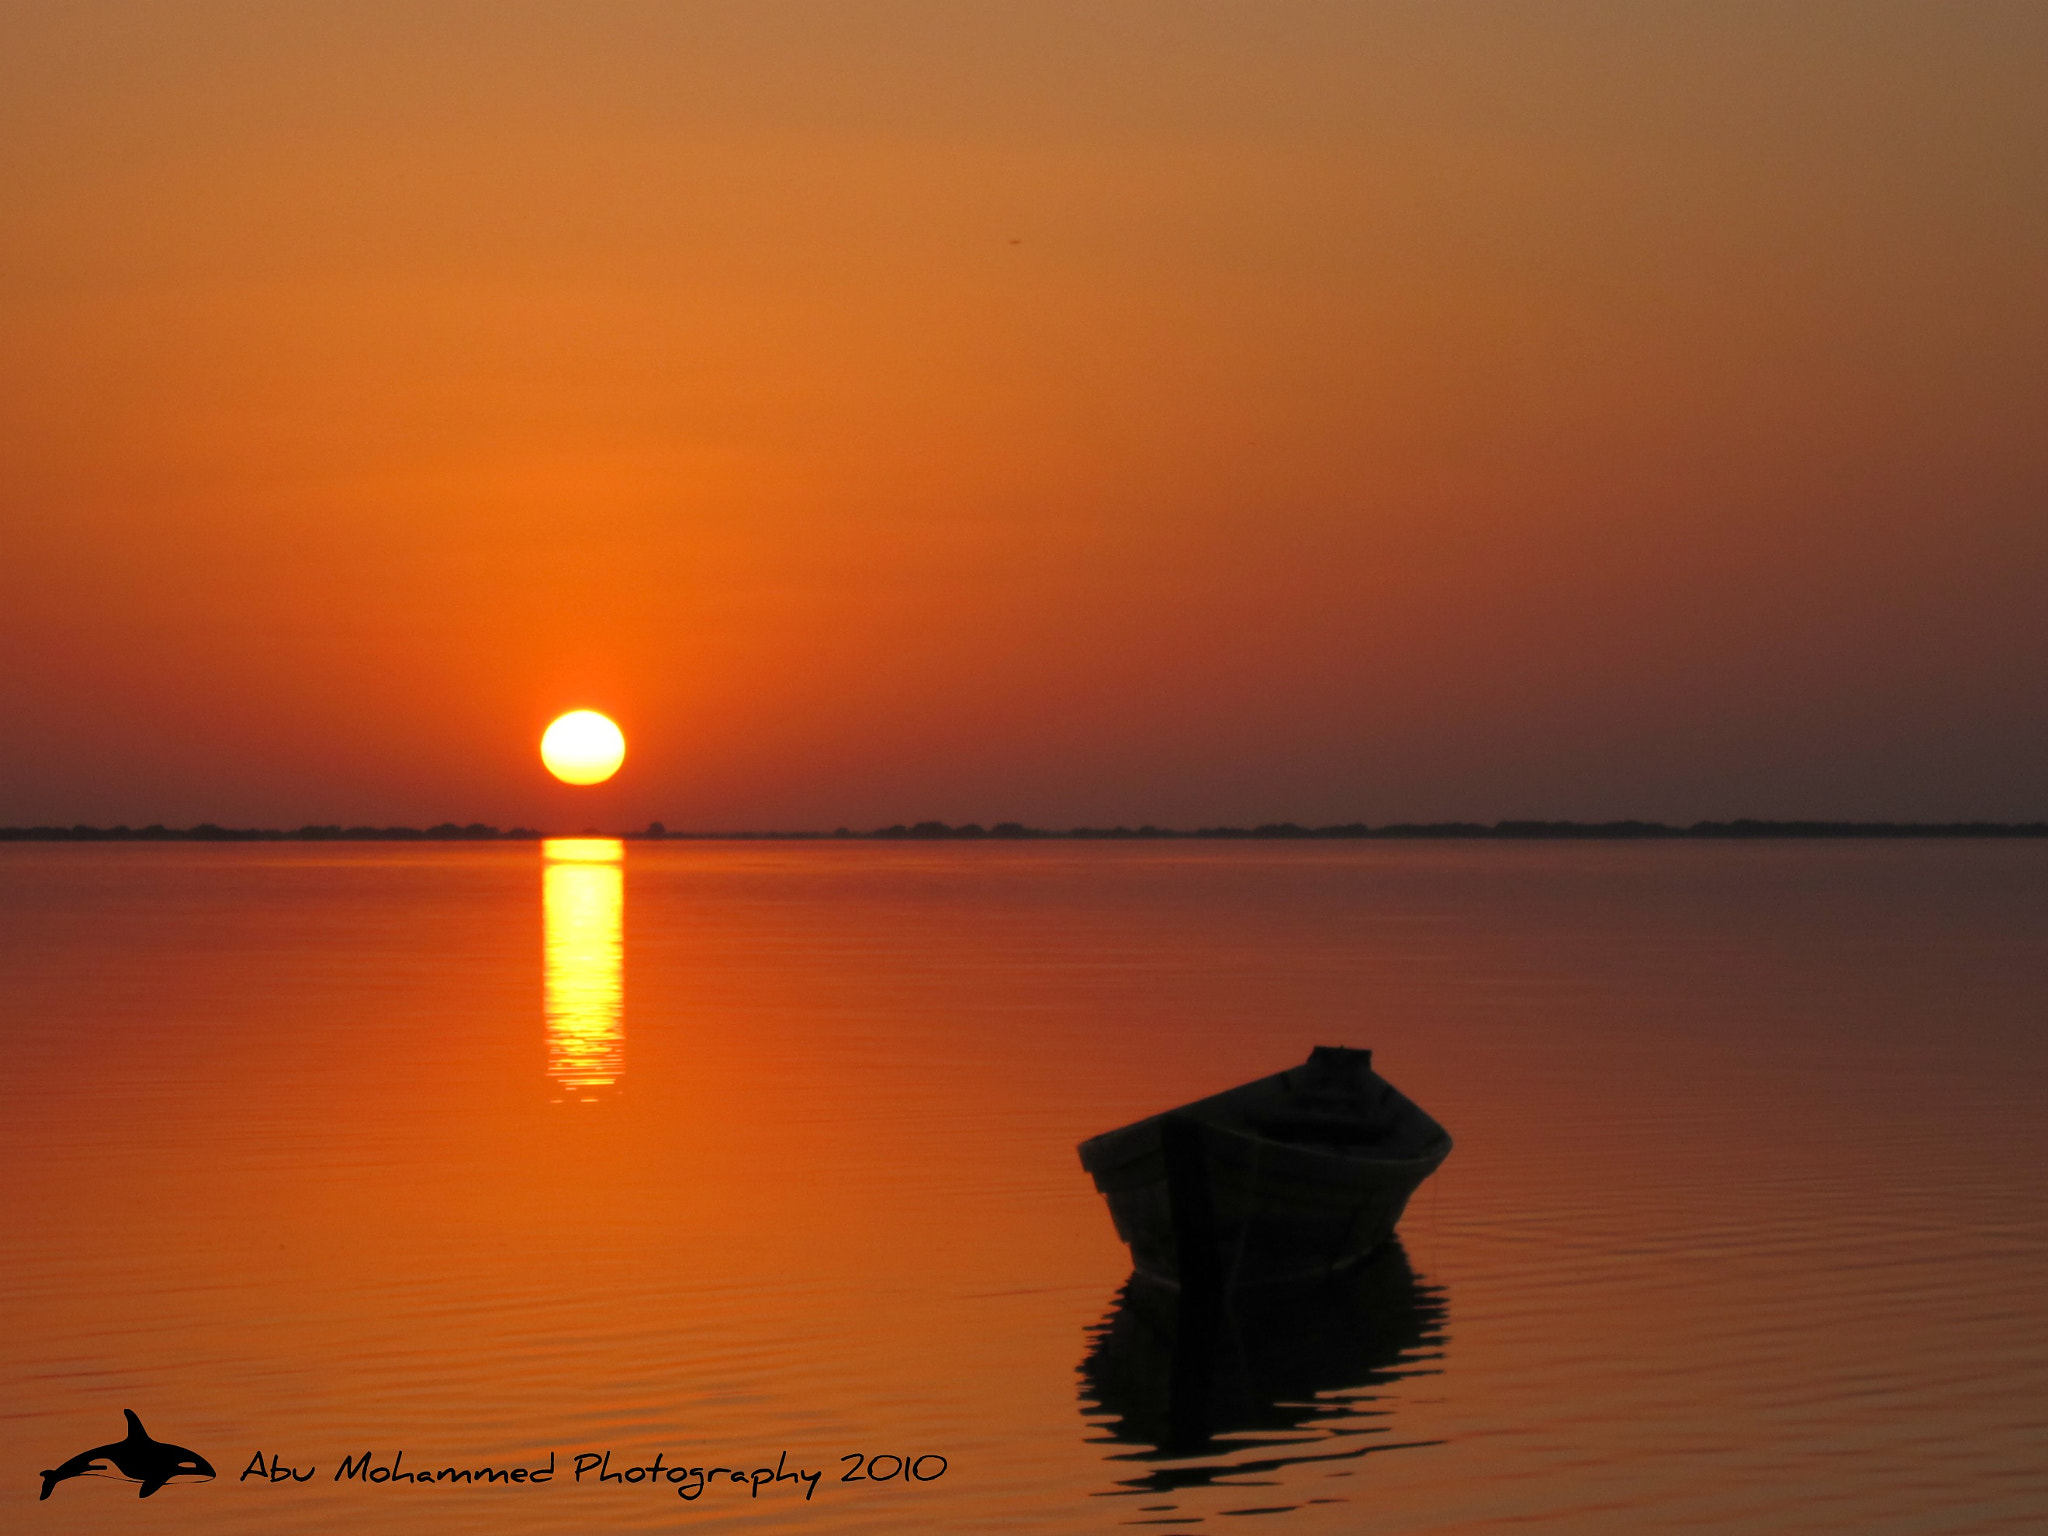 Photograph Sunset 1 by Abu Mohammed Fathelrahman on 500px